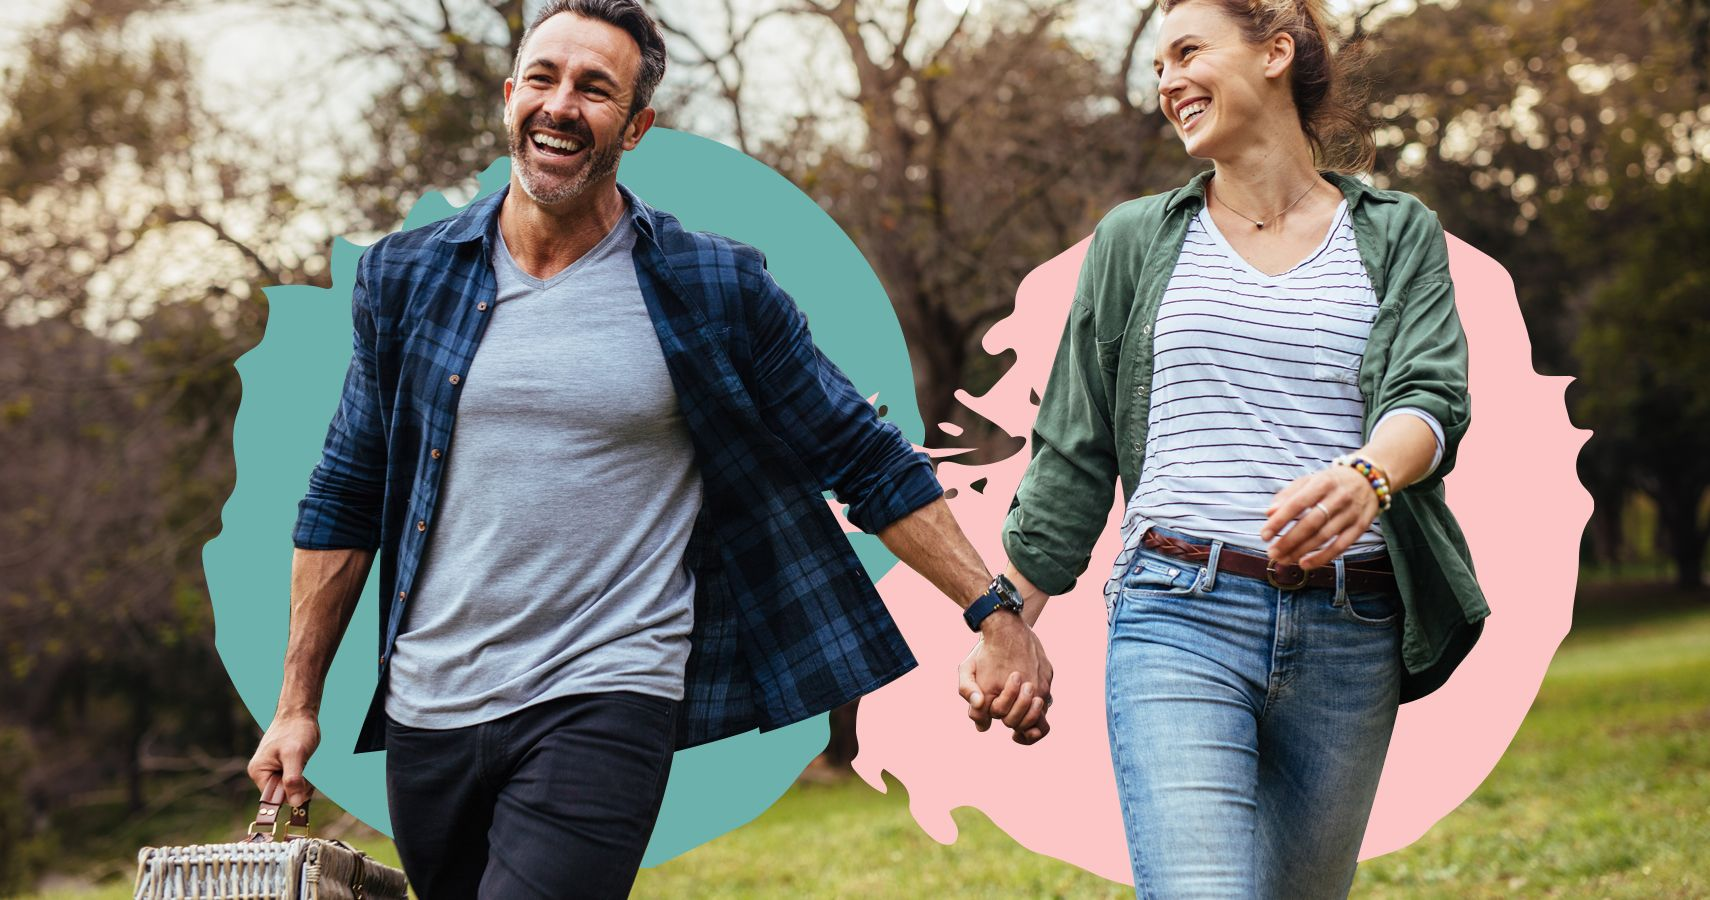 Tips For Married Couples Who Can't Find Time For Each Other